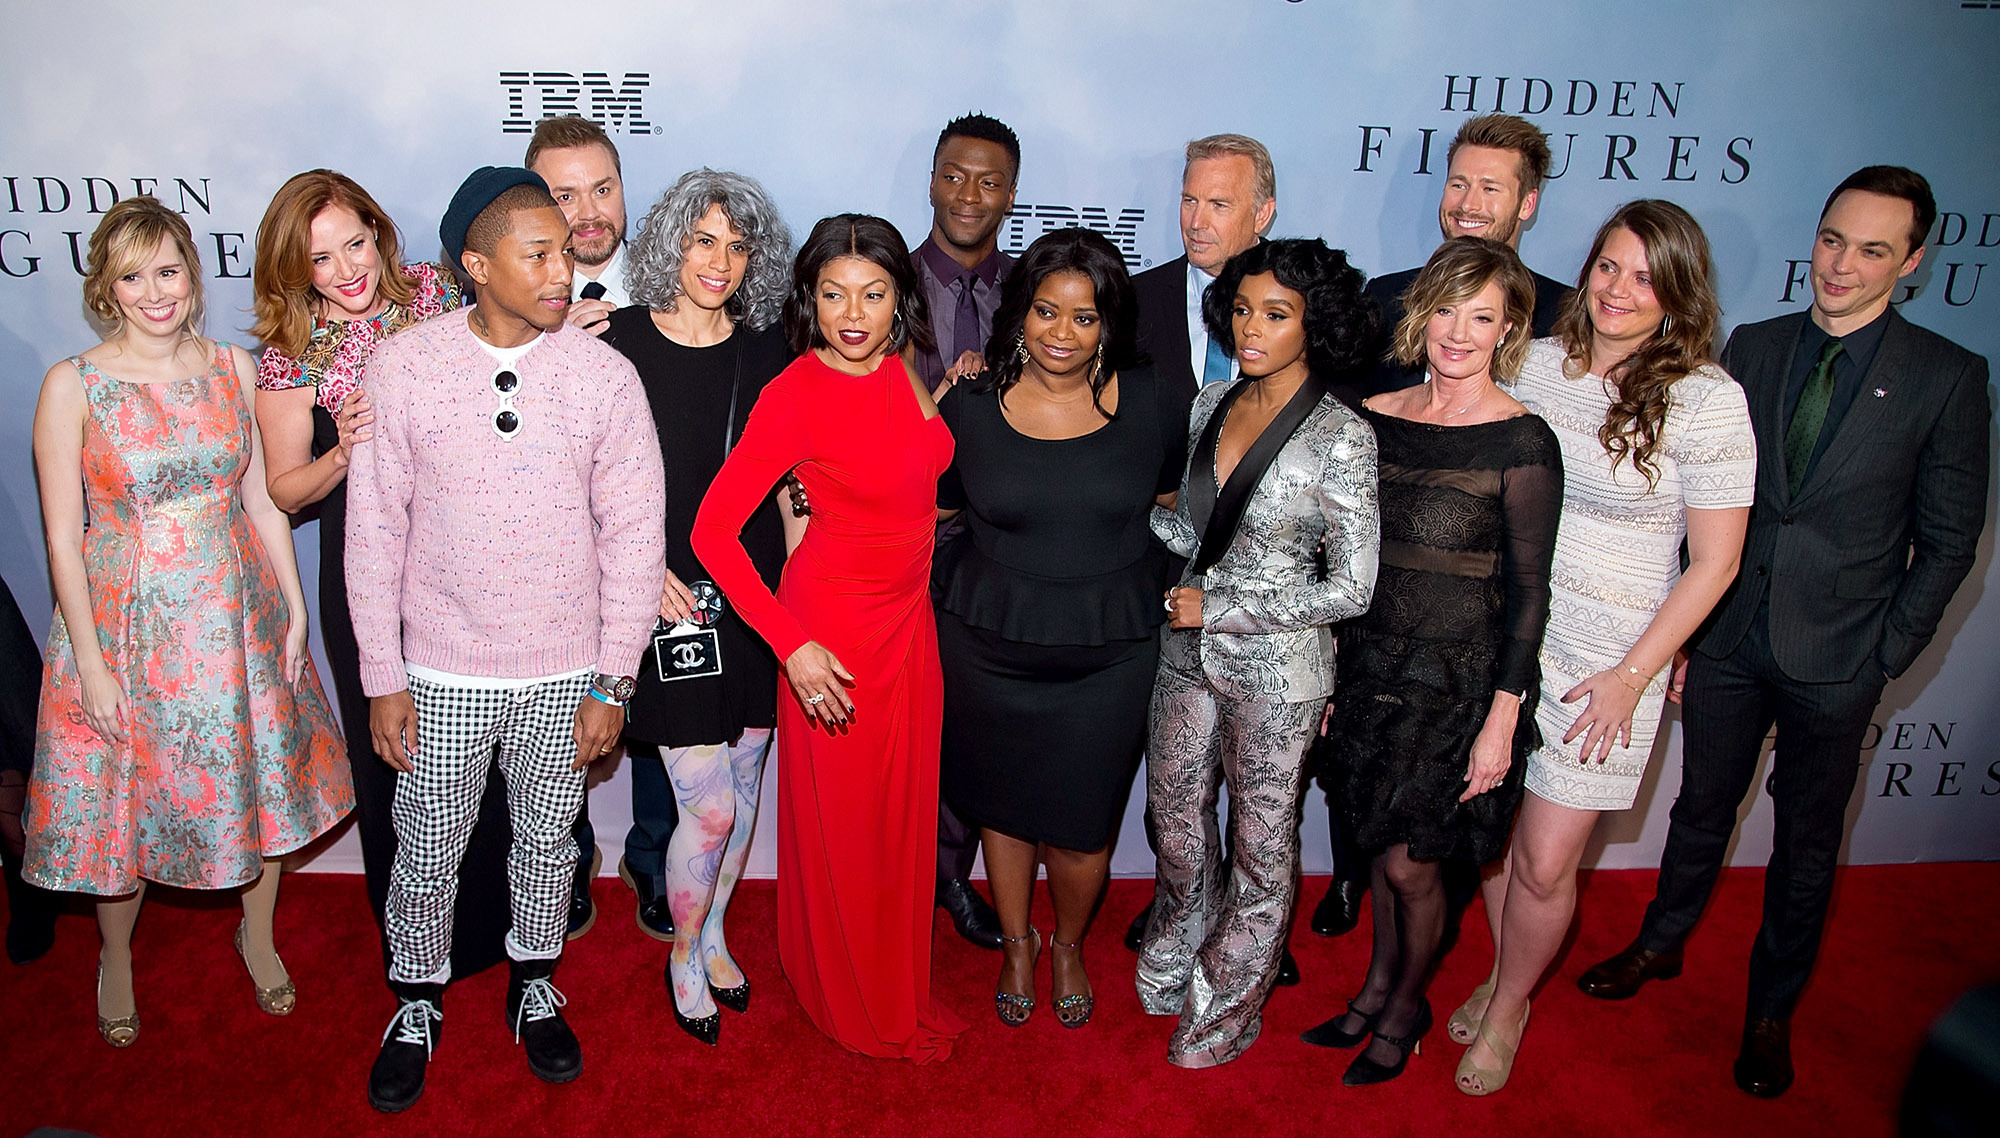 "(L-R) Kimberly Quinn, Pharrell Williams, Theodore Melfi, Mimi Vlades, Taraji P. Henson, Aldis Hodge, Octavia Spencer, Kevin Costner, Janelle Monae, Glen Powell and Jim Parsons attend the ""Hidden Figures"" New York special screening on December 10, 2016 in New York City.  (Photo by Michael Stewart/Getty Images)"